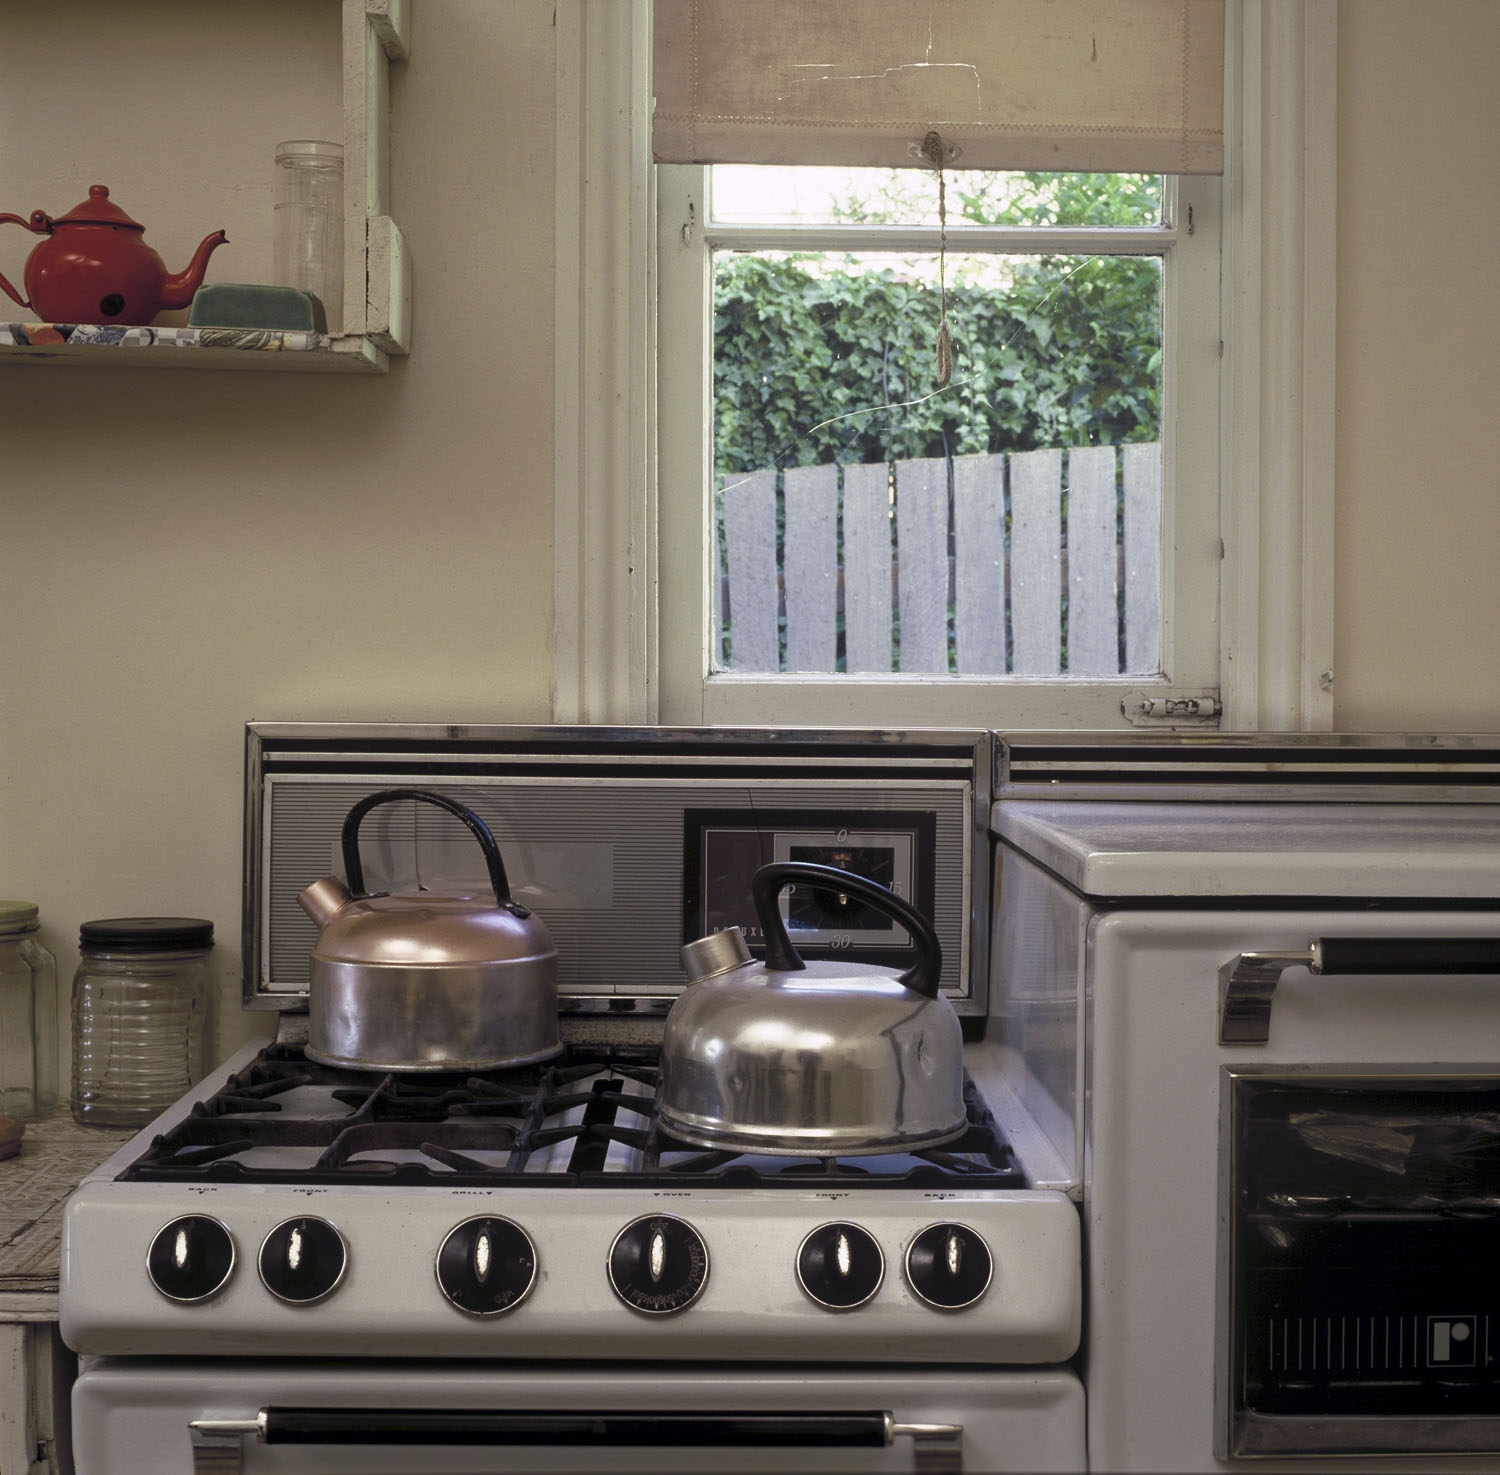 Image of the kitchen ant Meroogal. The oven is taking up the lower right of the frame, and the window the upper left. A kettle is sitting on the oven.